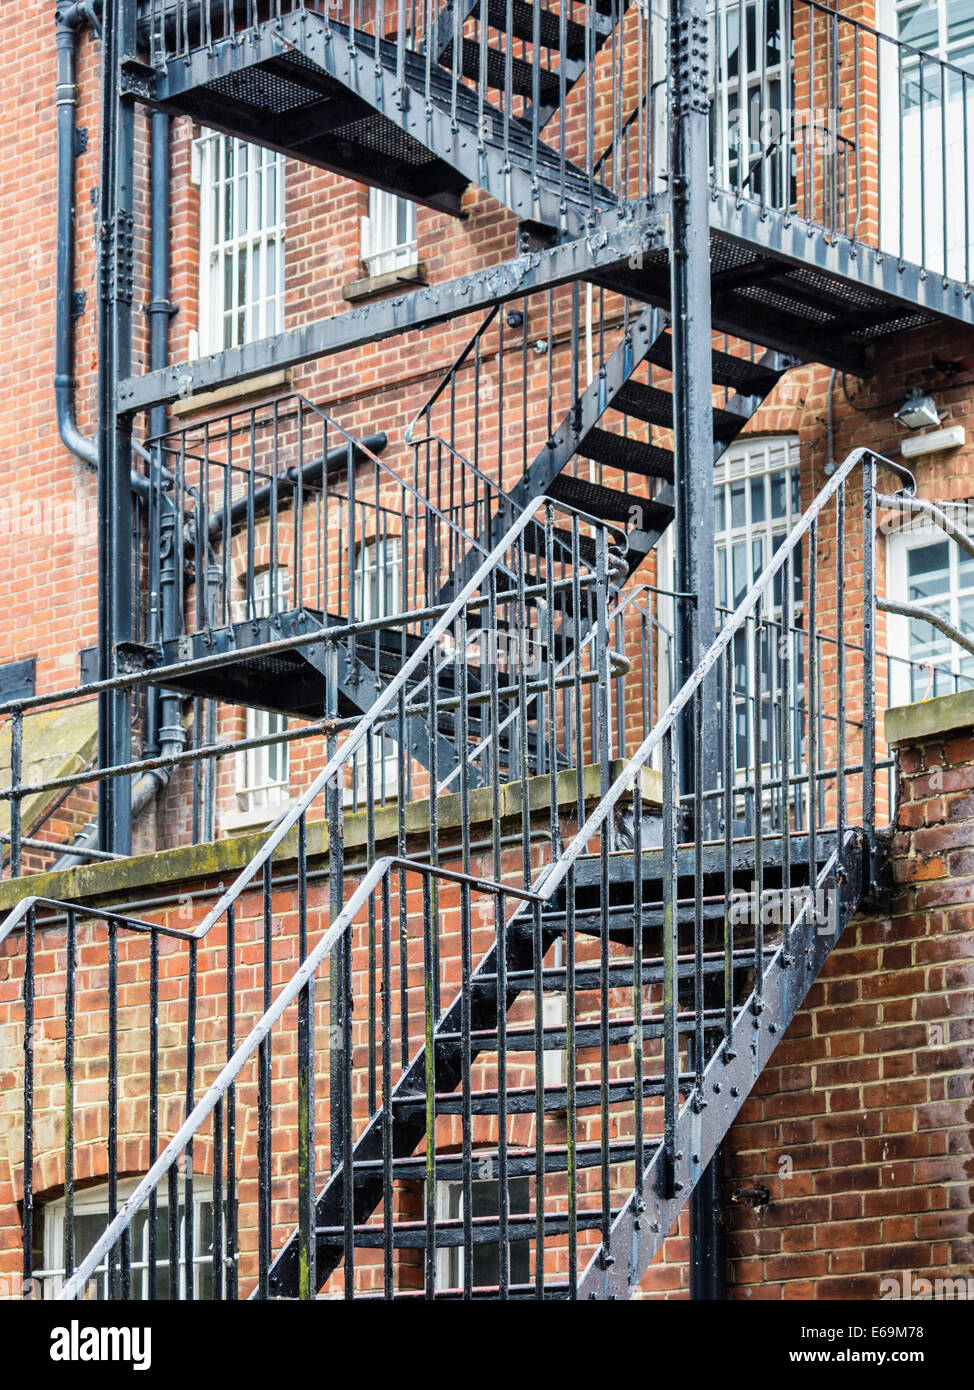 External Metal Staircase Fire Escape On Old Brick Building, Twickenham,  Middlesex, Greater London, UK